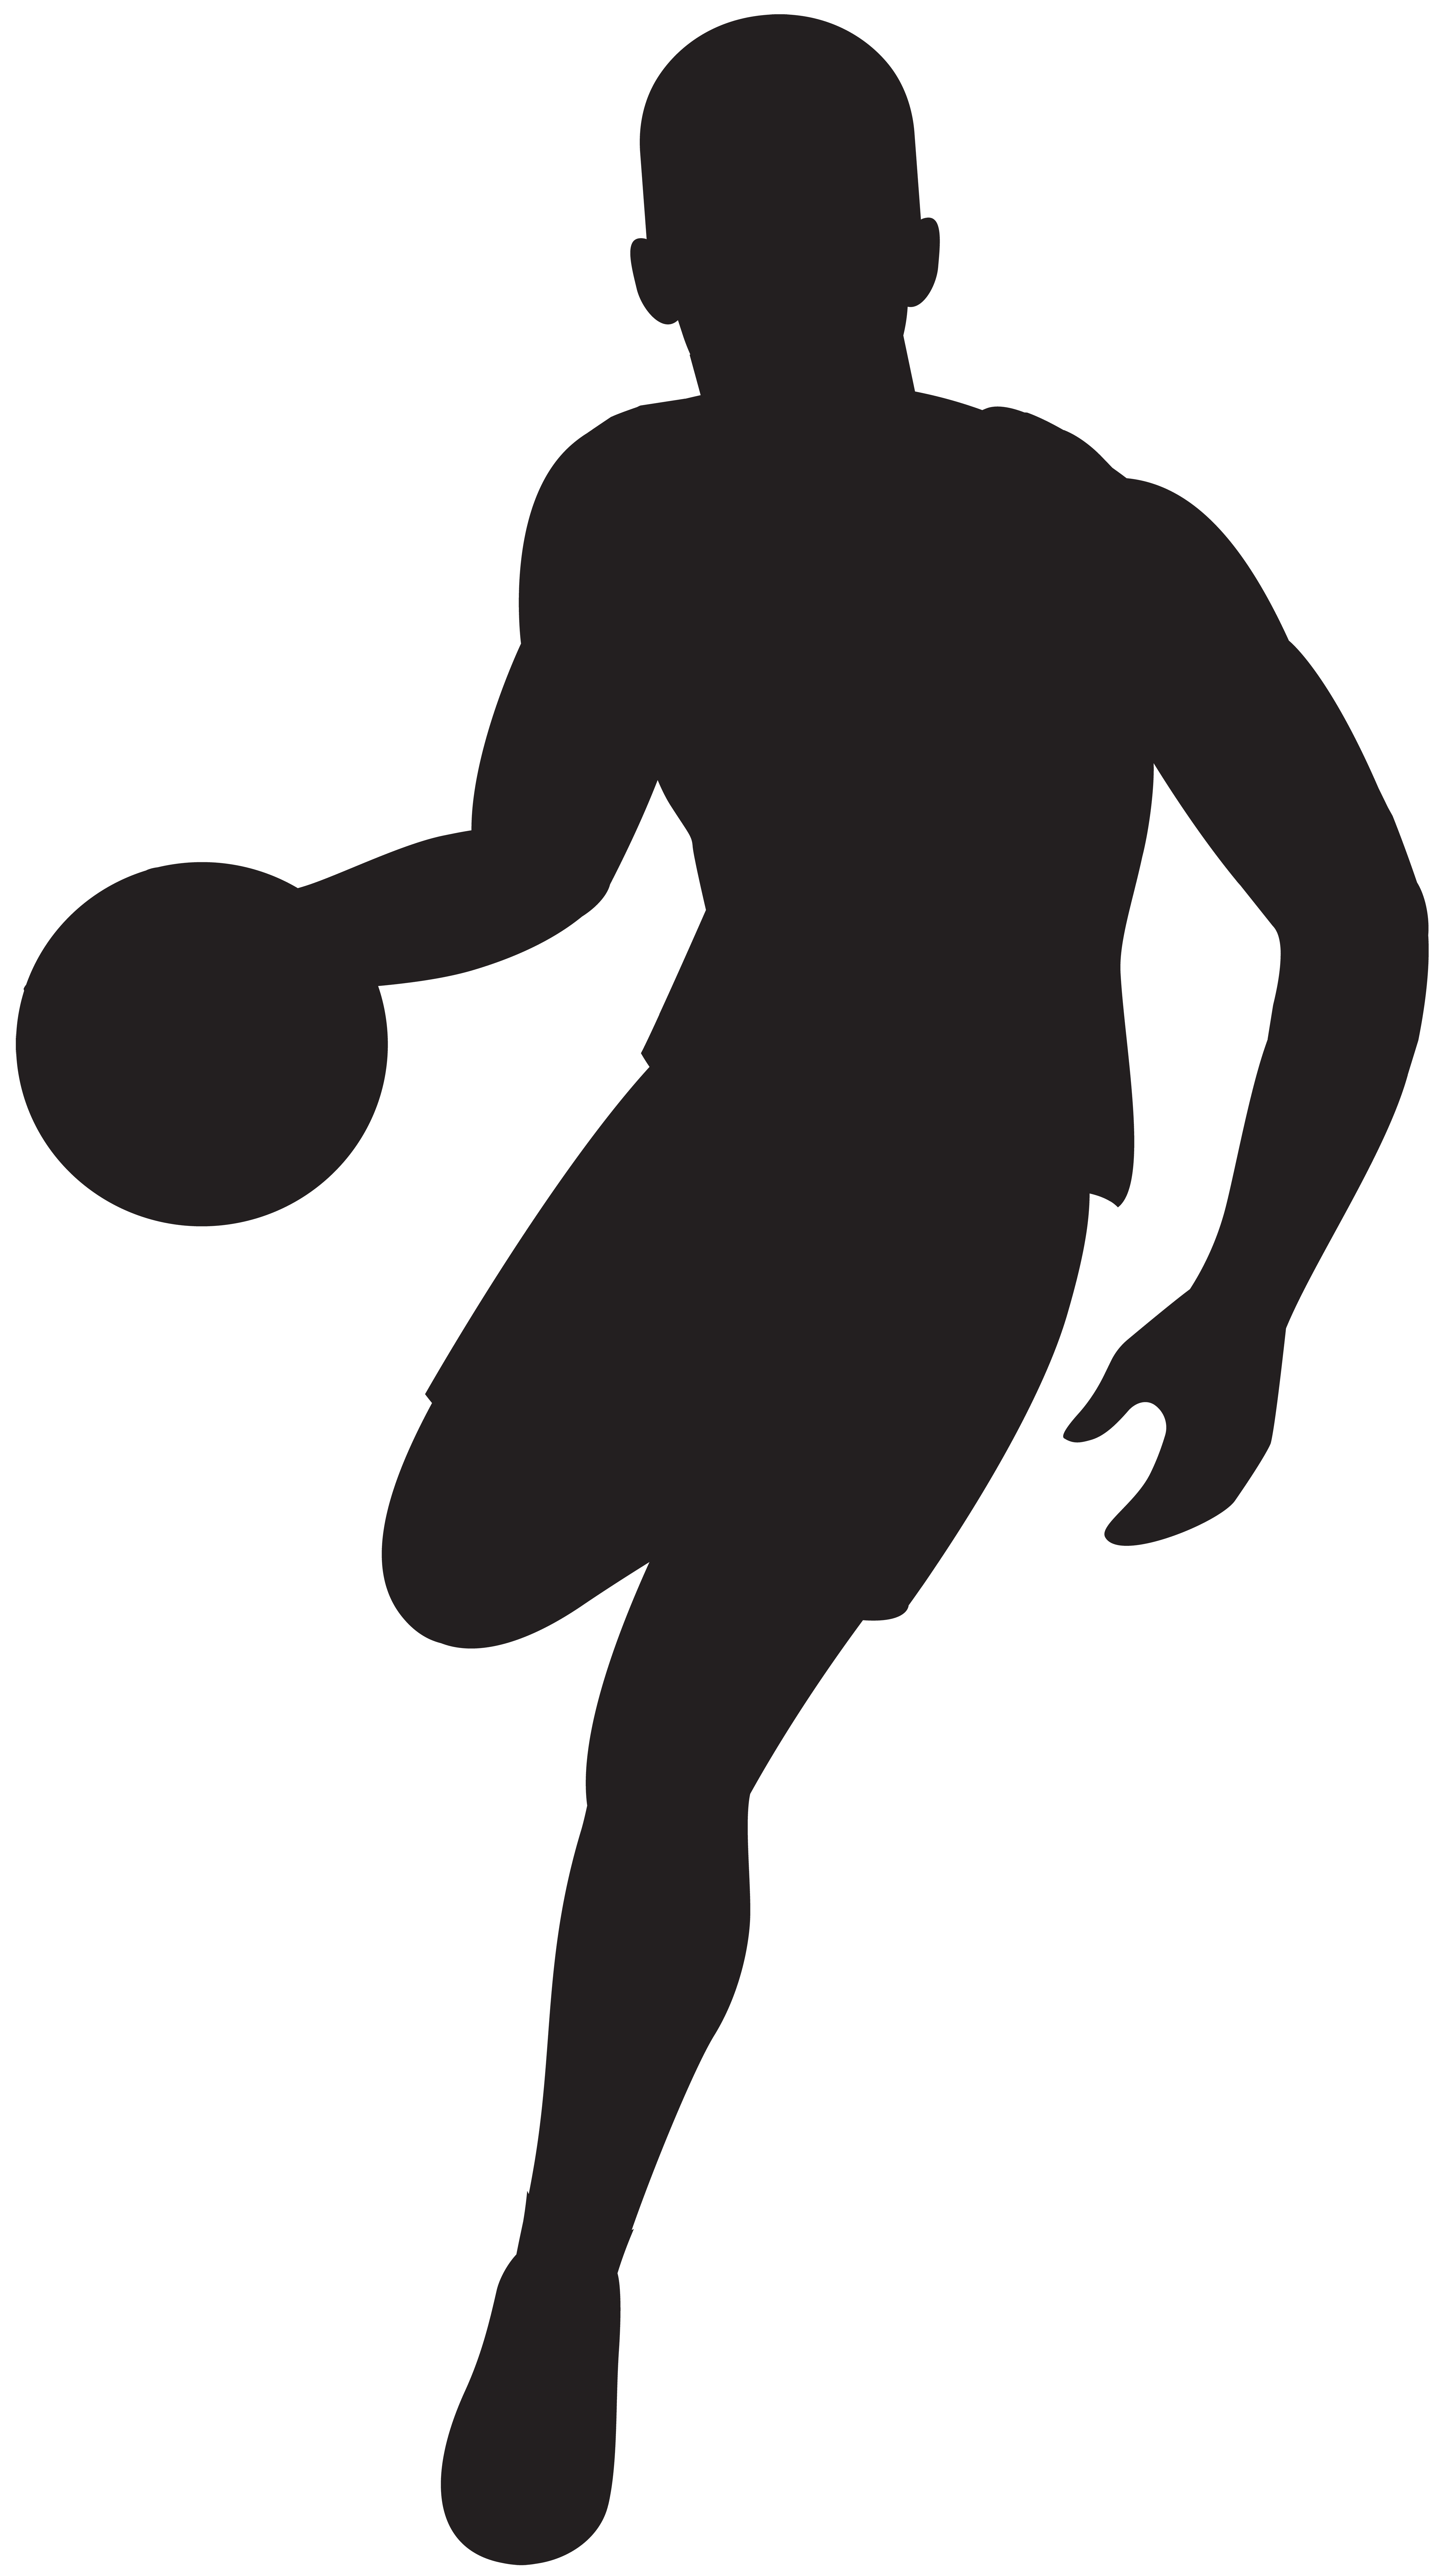 Basketball Player Silhouette Clip Art Image.